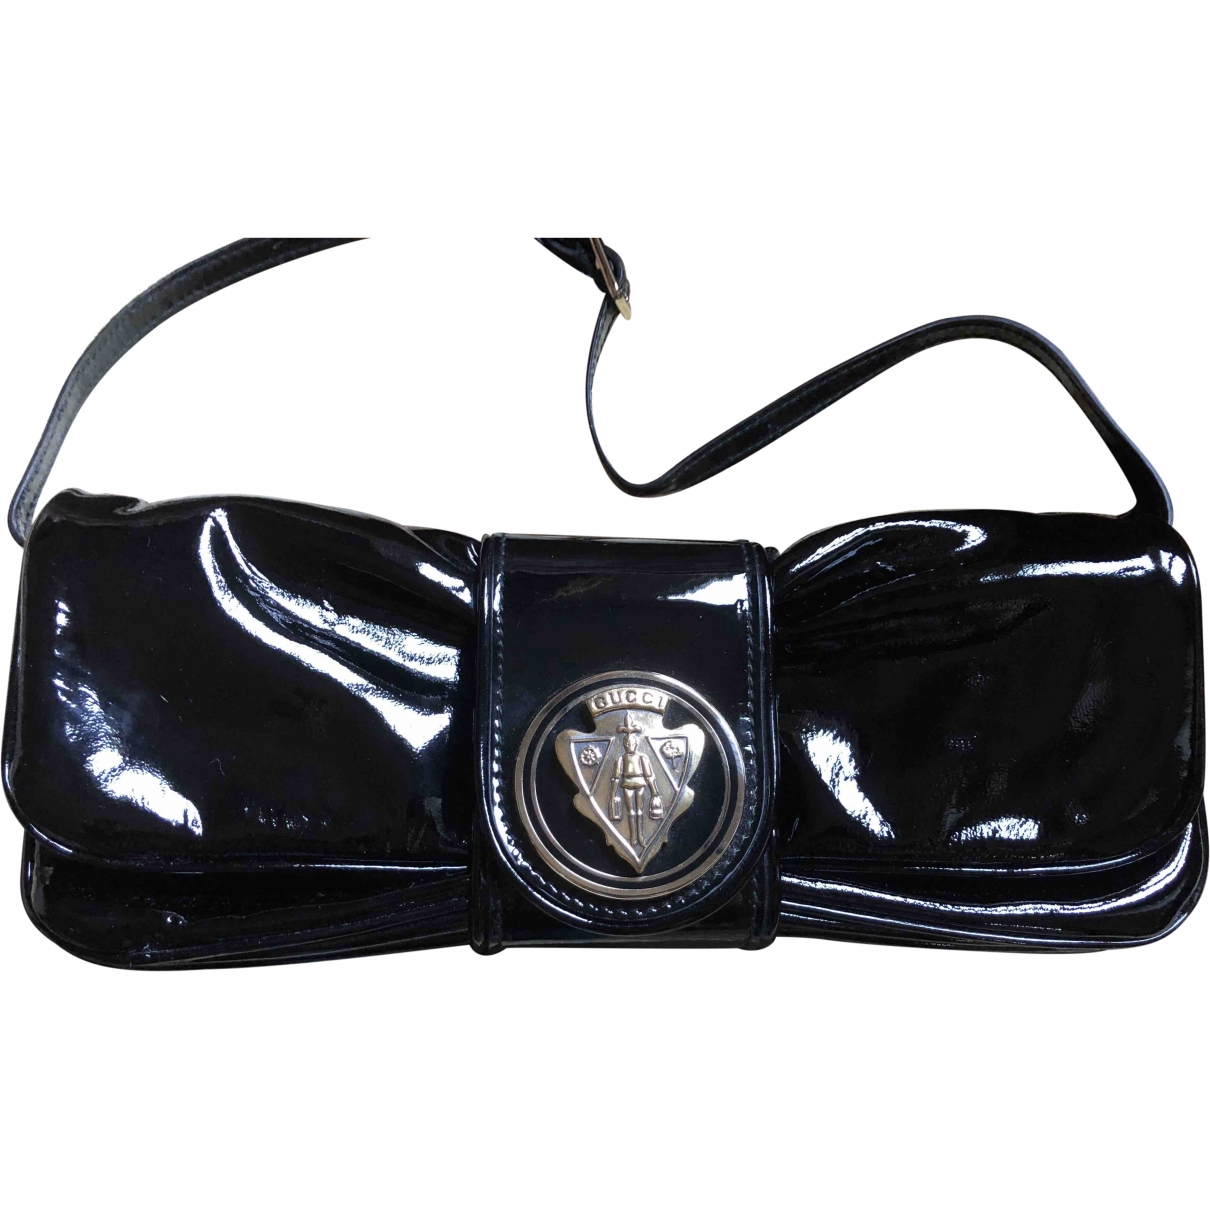 Gucci Hysteria Black Patent leather Clutch bag for Women \N